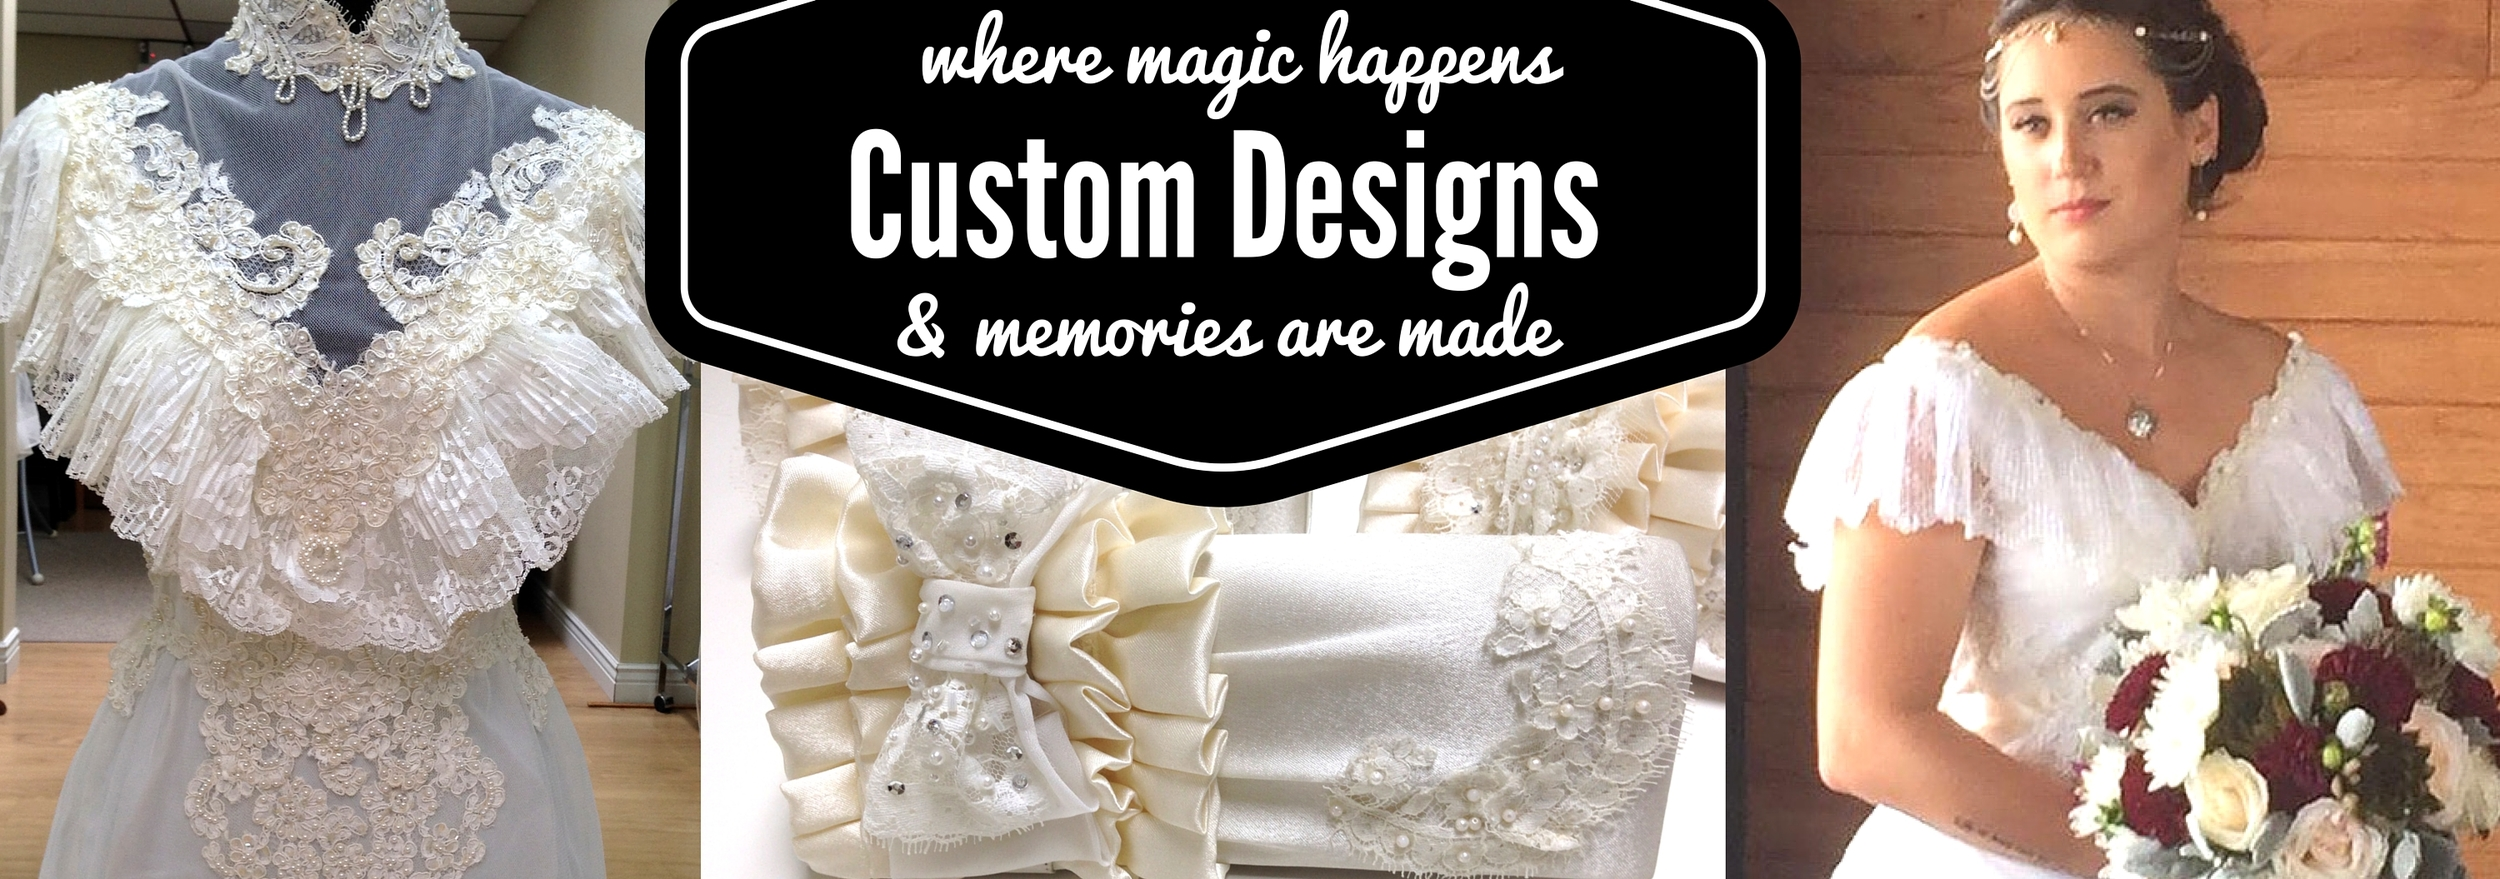 custom designs slider - home page.jpg